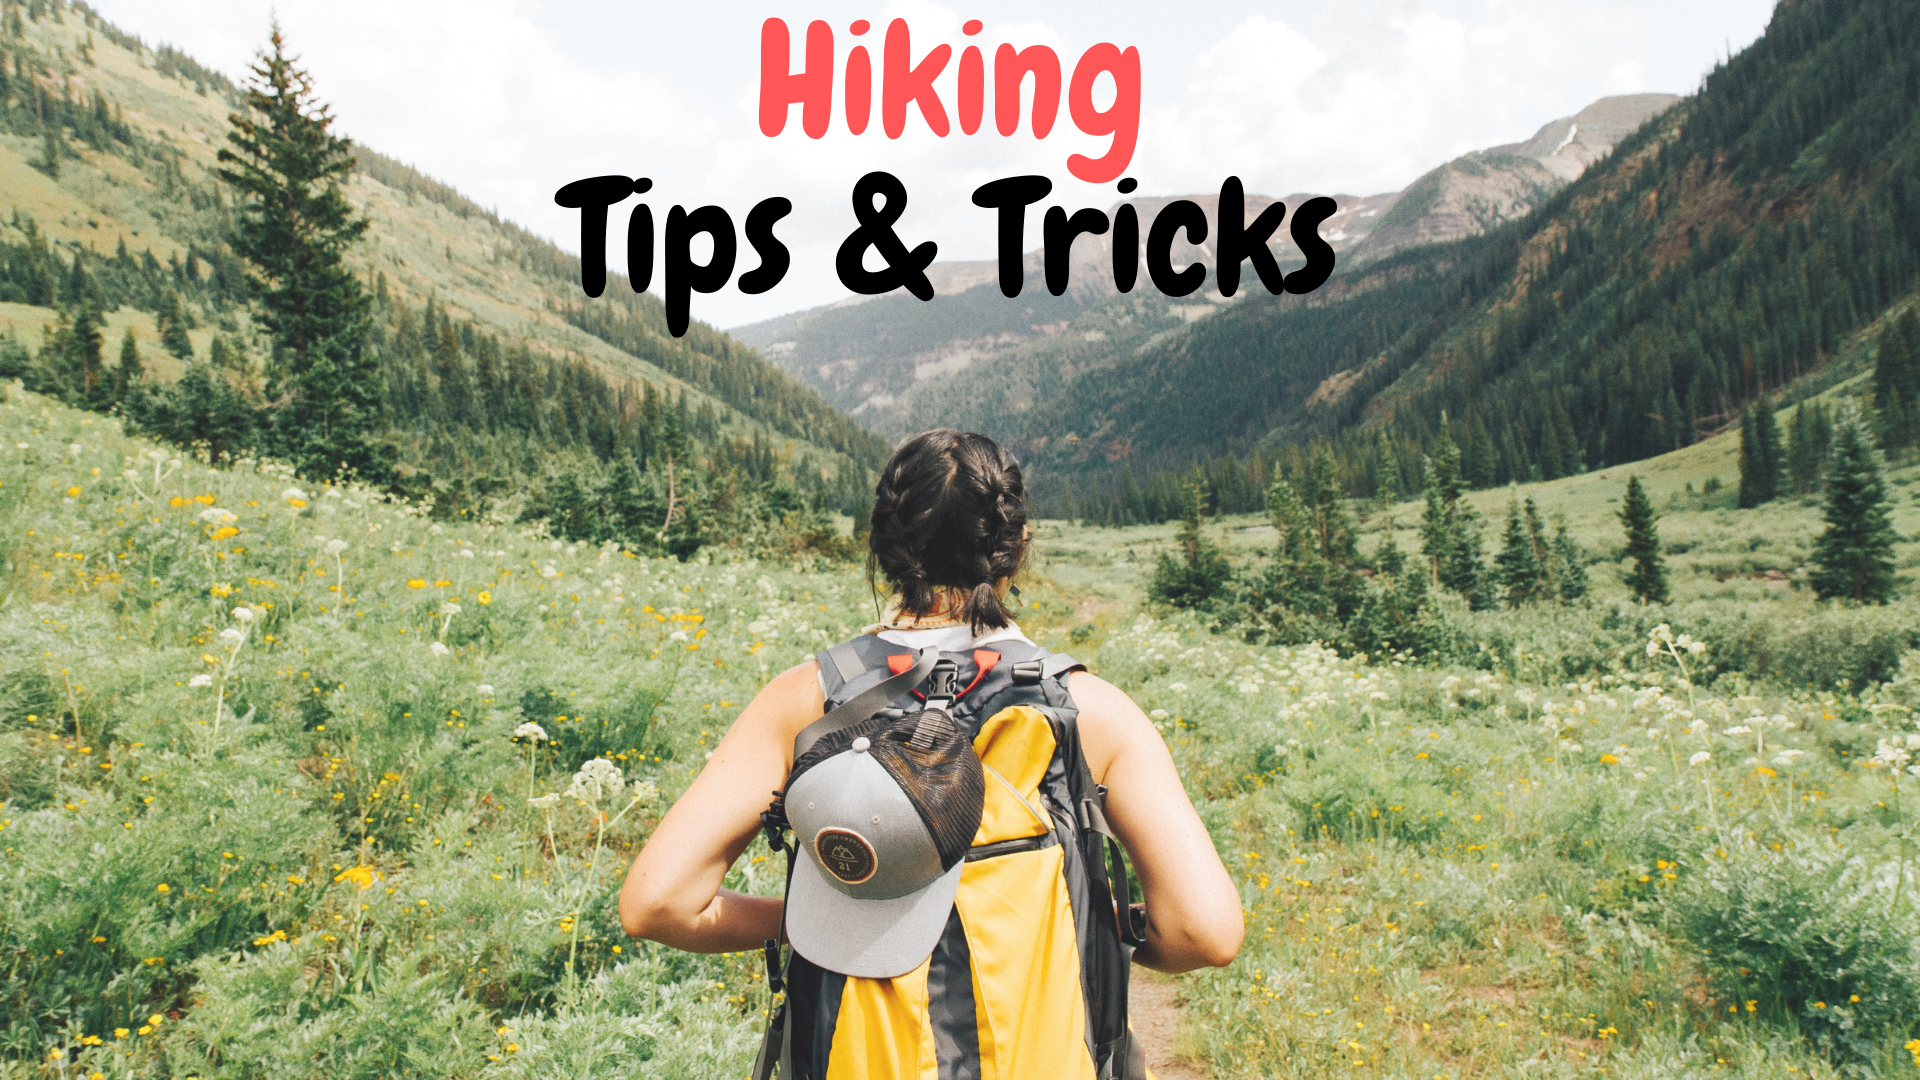 9 Hiking Tips & Tricks for Beginners!